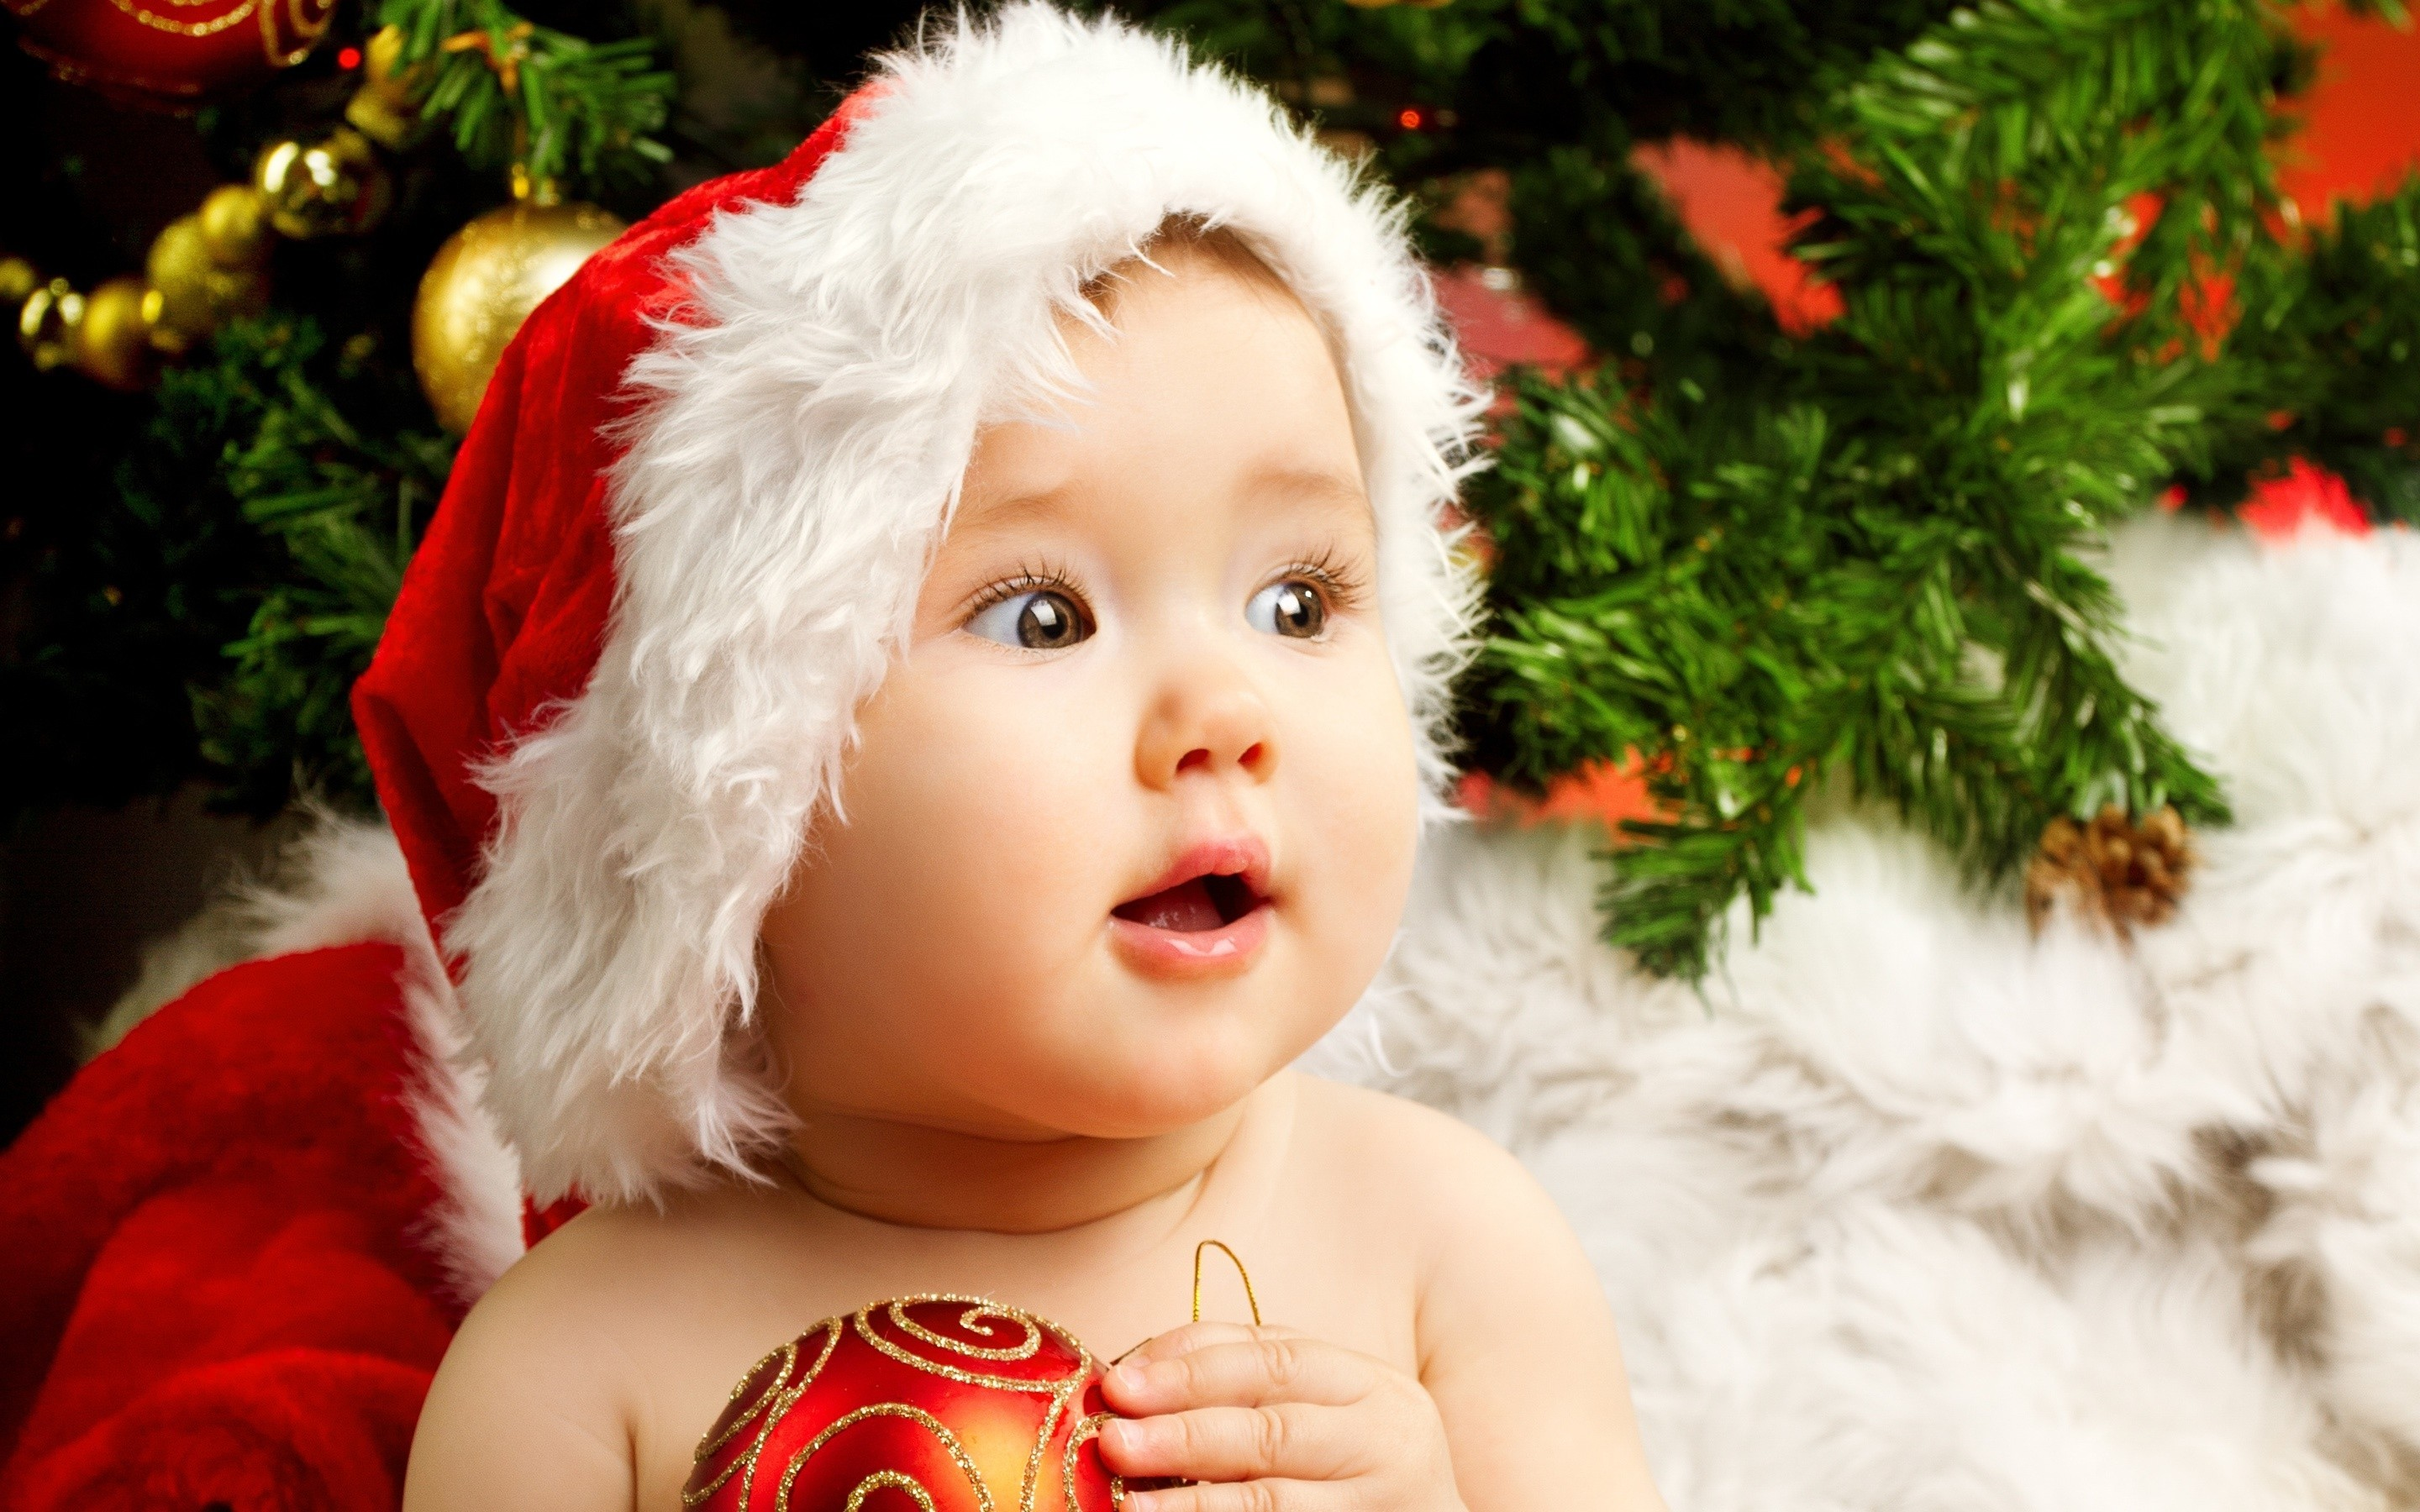 Christmas Baby Images Hd.Santa And Baby Jesus Wallpaper 59 Images